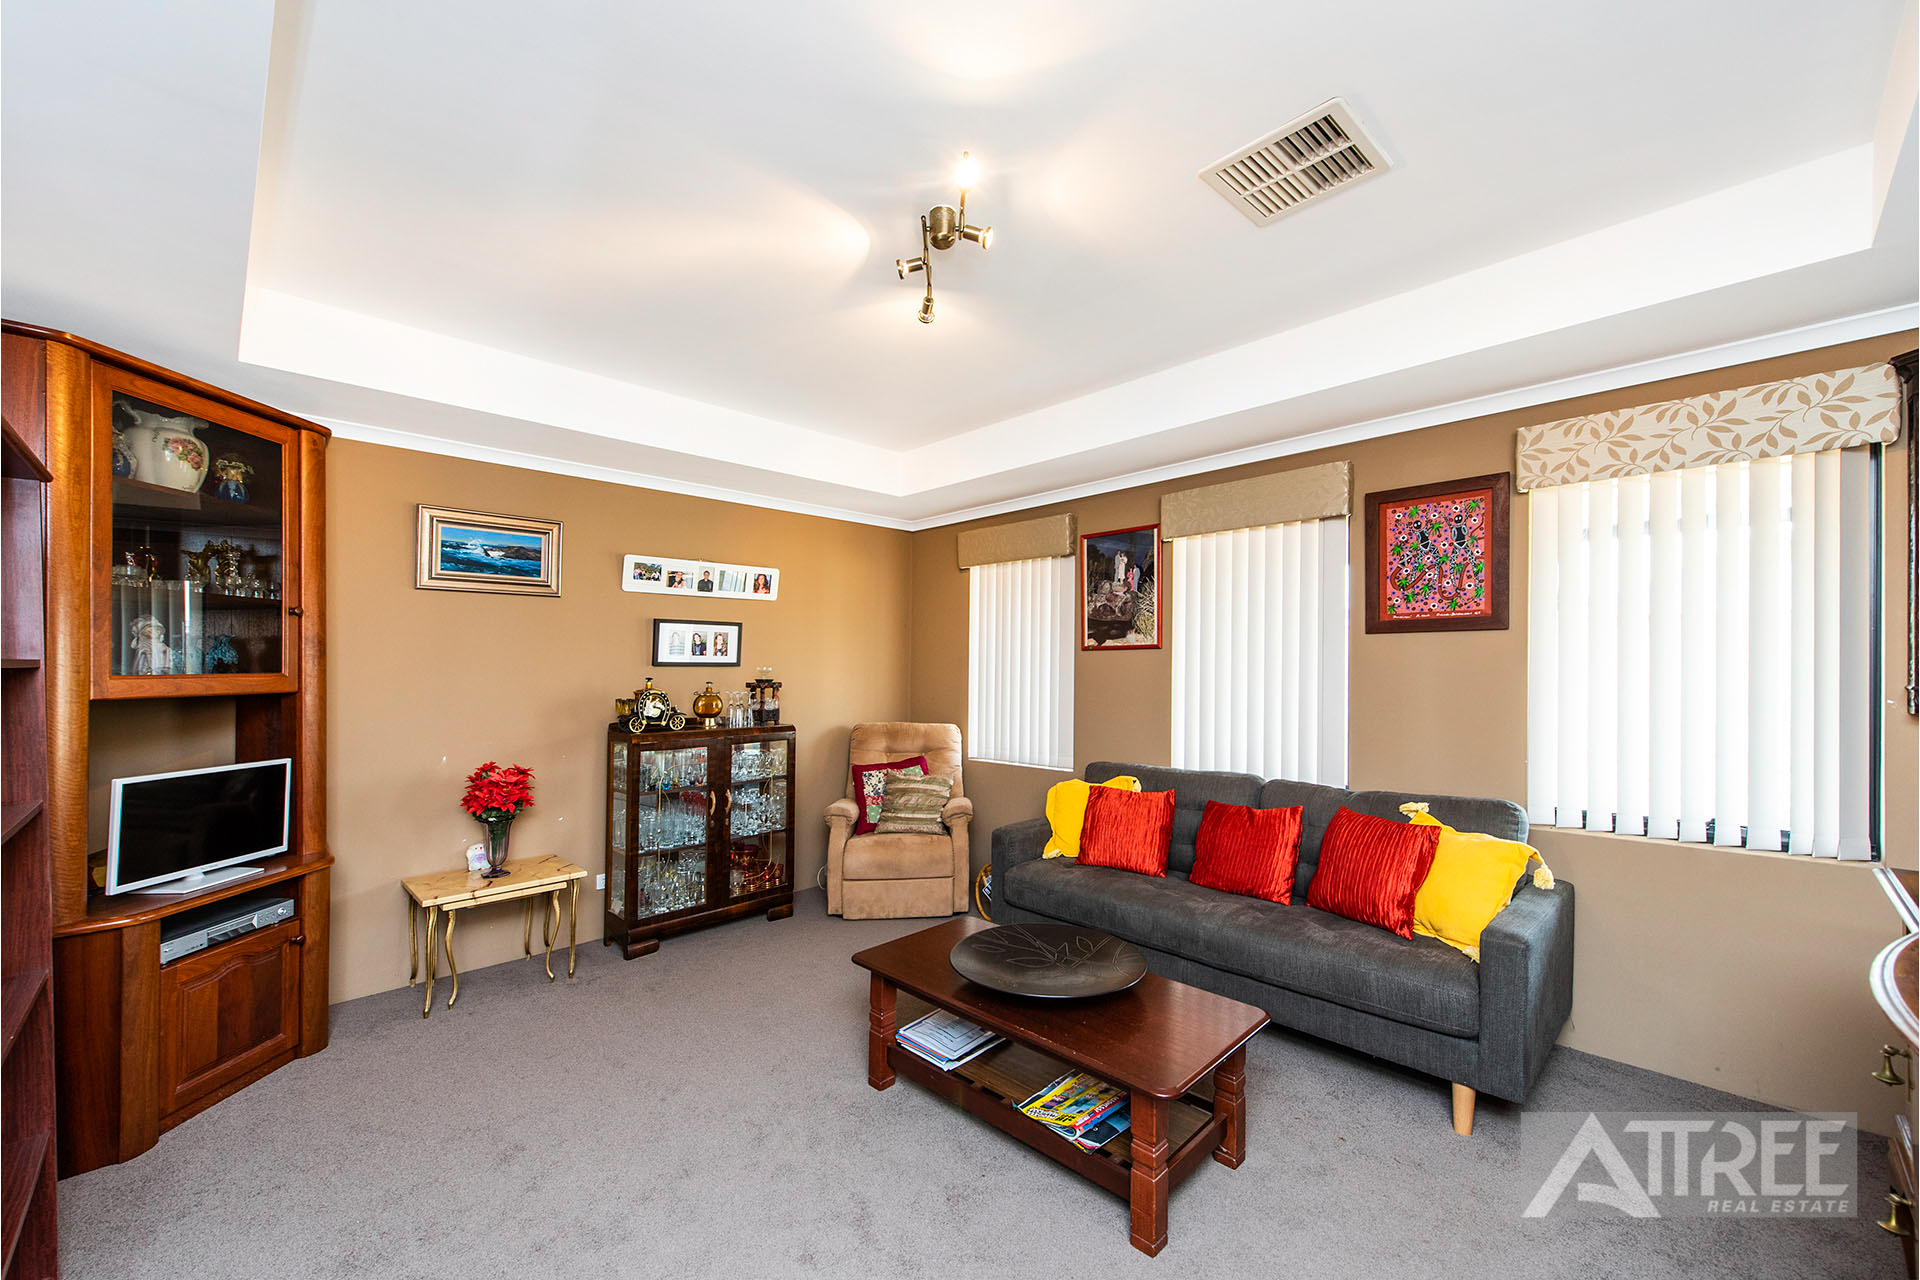 Property for sale in ATWELL, 19 Patchouli Circle : Attree Real Estate